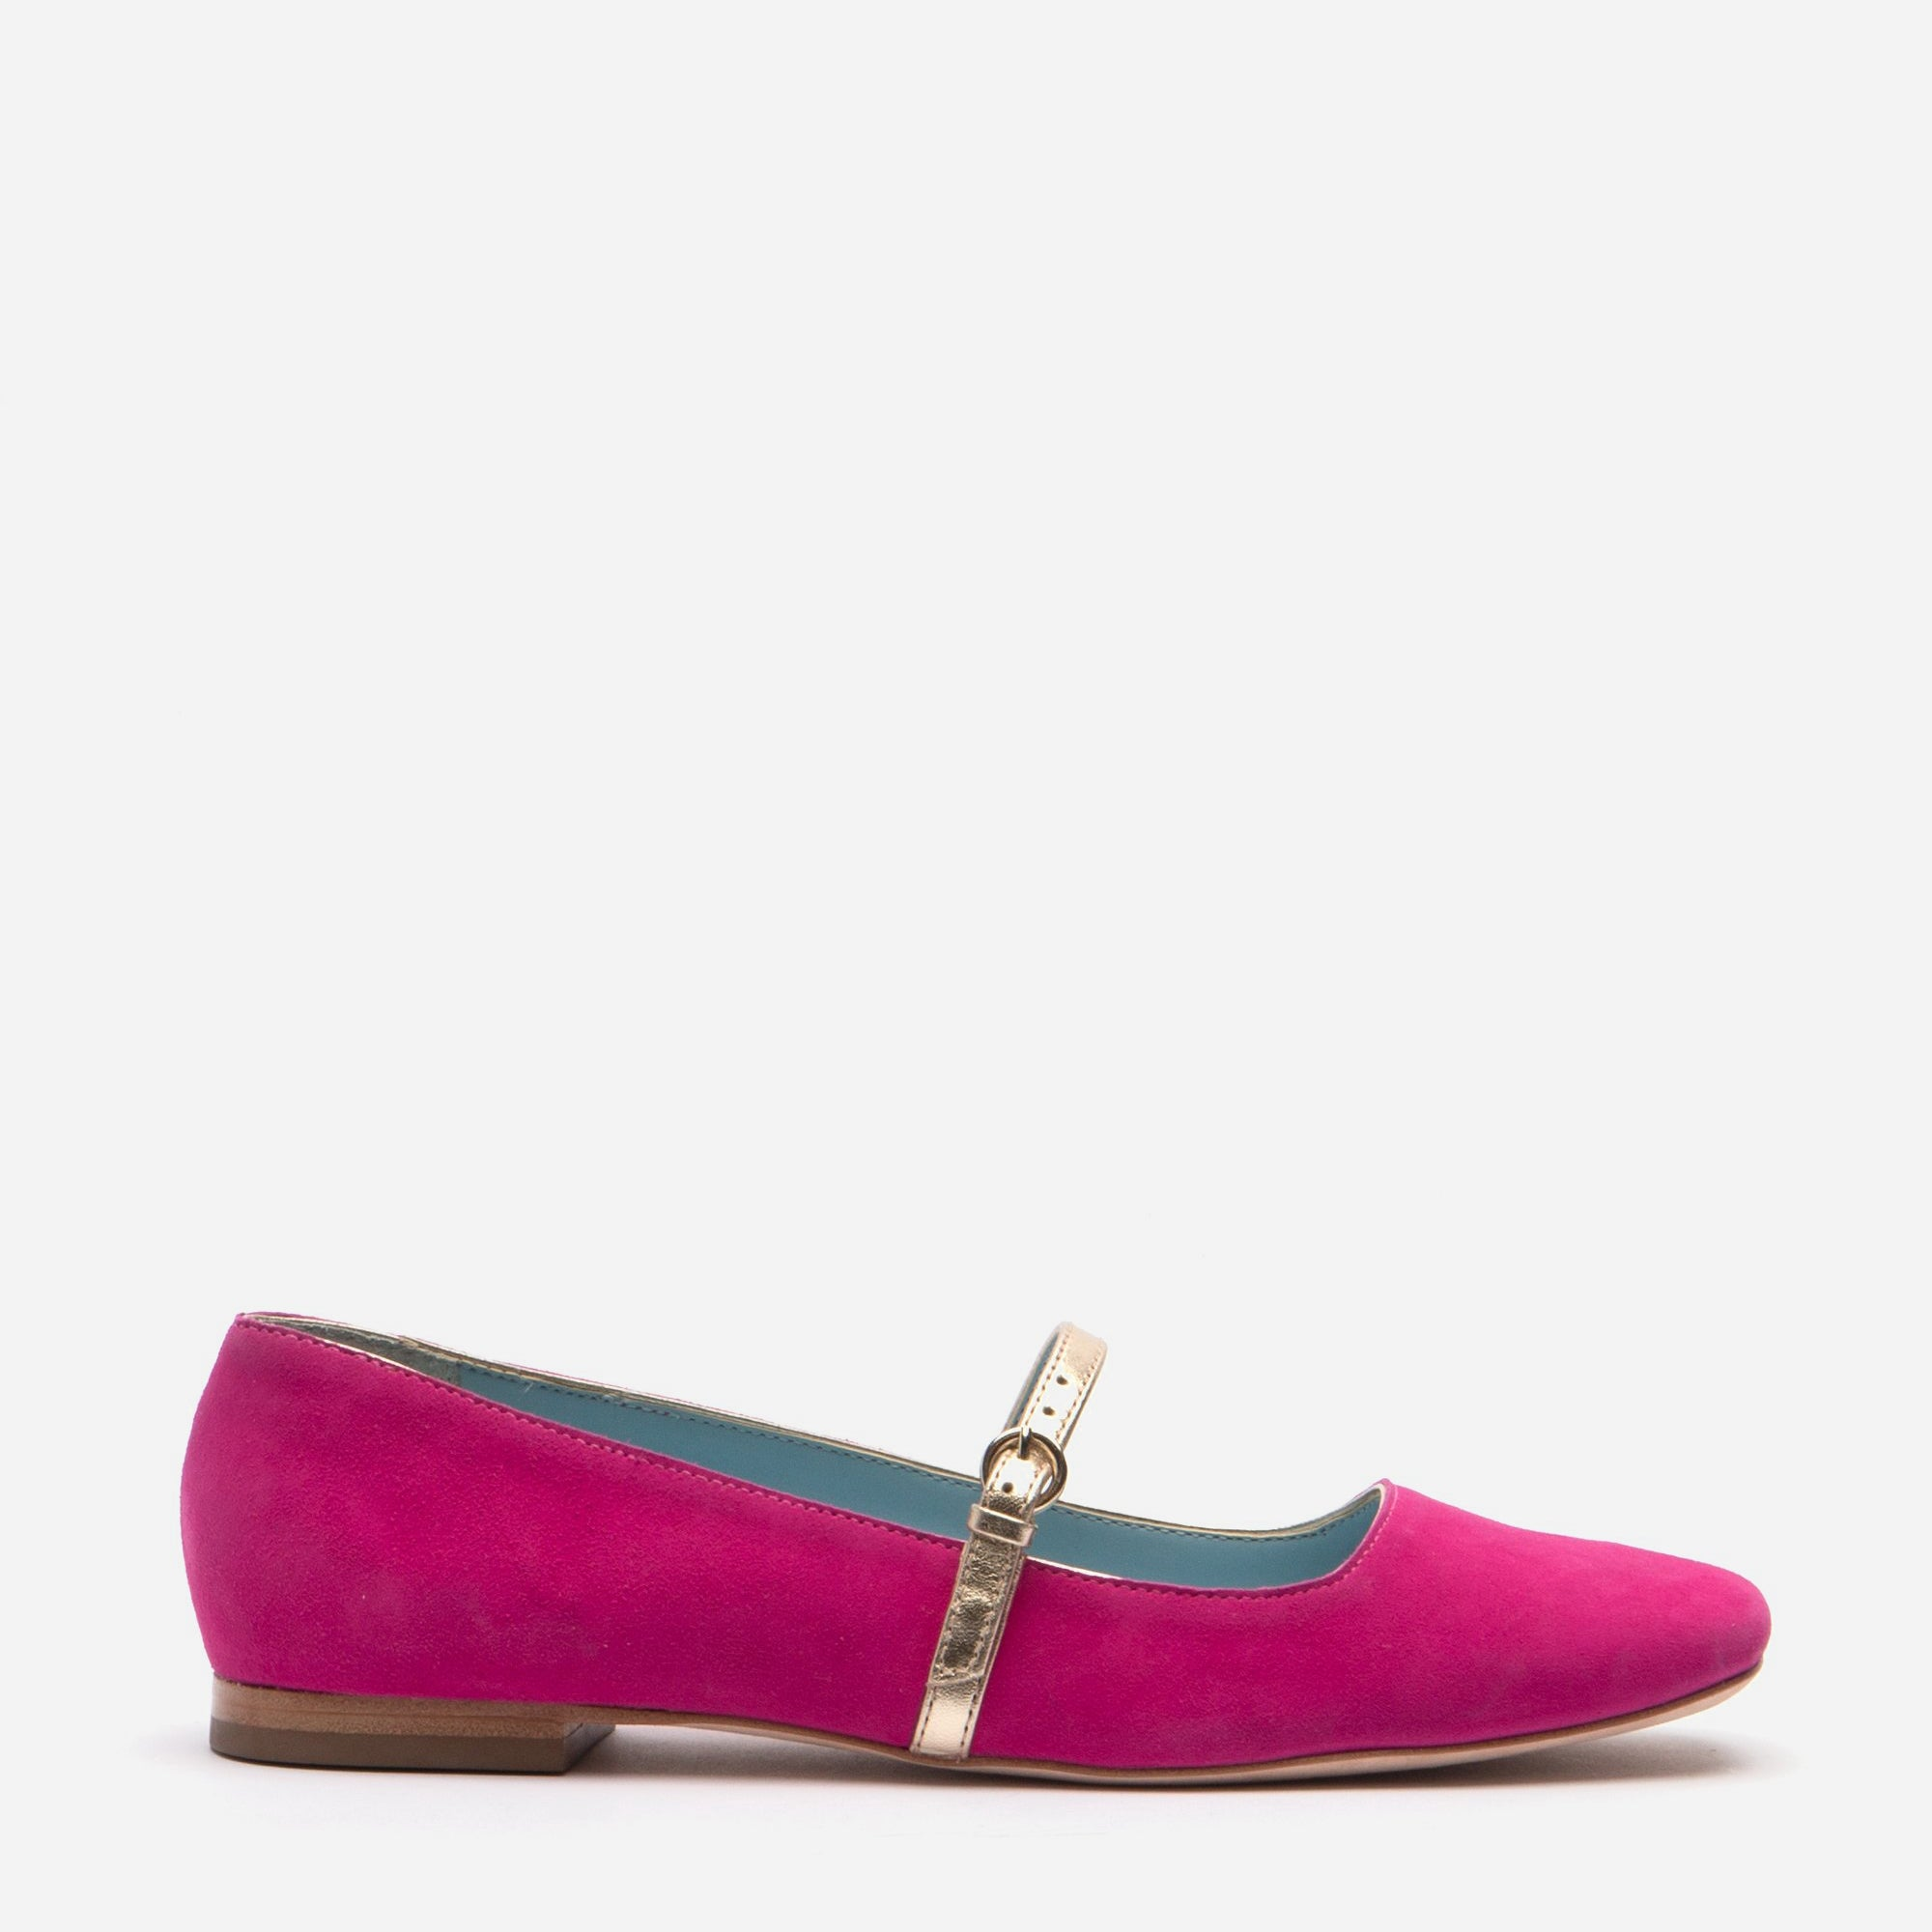 Joan Suede Mary Jane Flats Berry